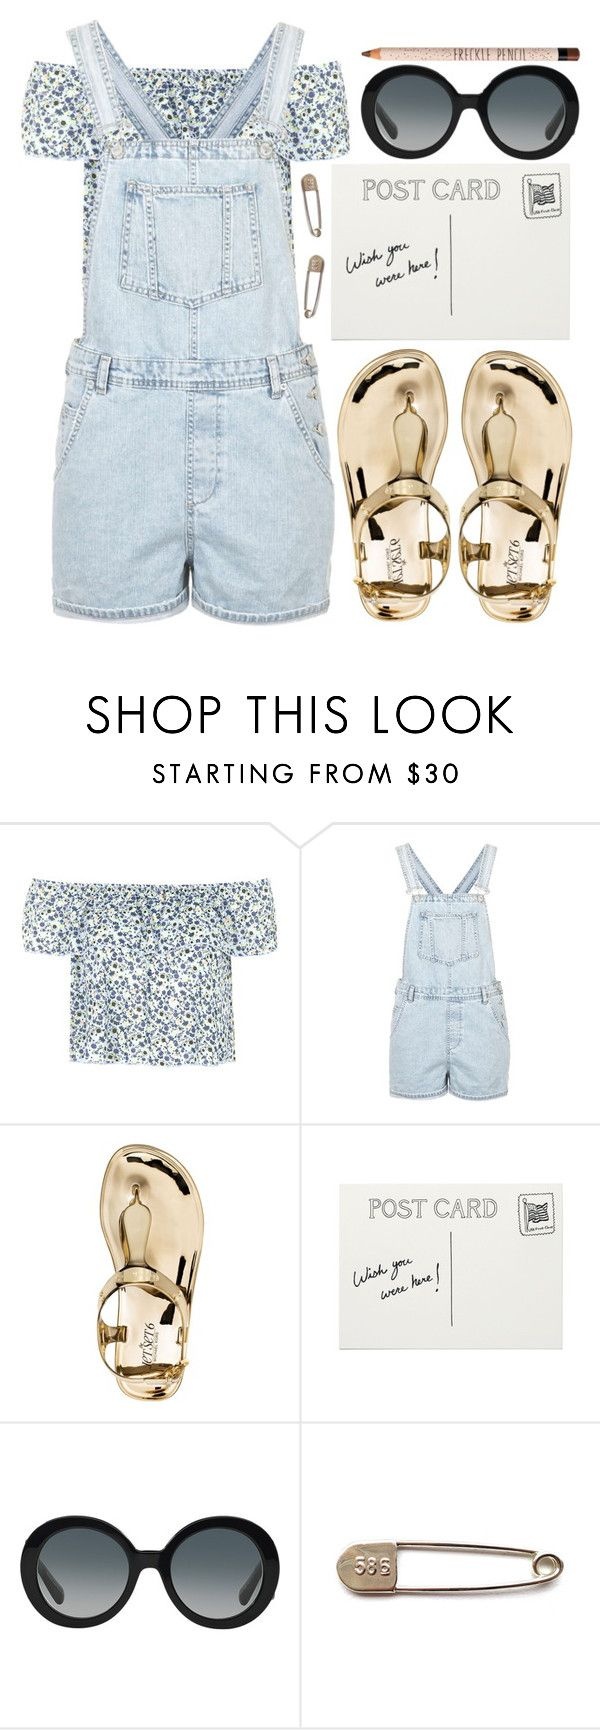 """""""Wonderland"""" by puppies241 ❤ liked on Polyvore featuring Topshop, Michael Kors, Prada, denim and Blue"""